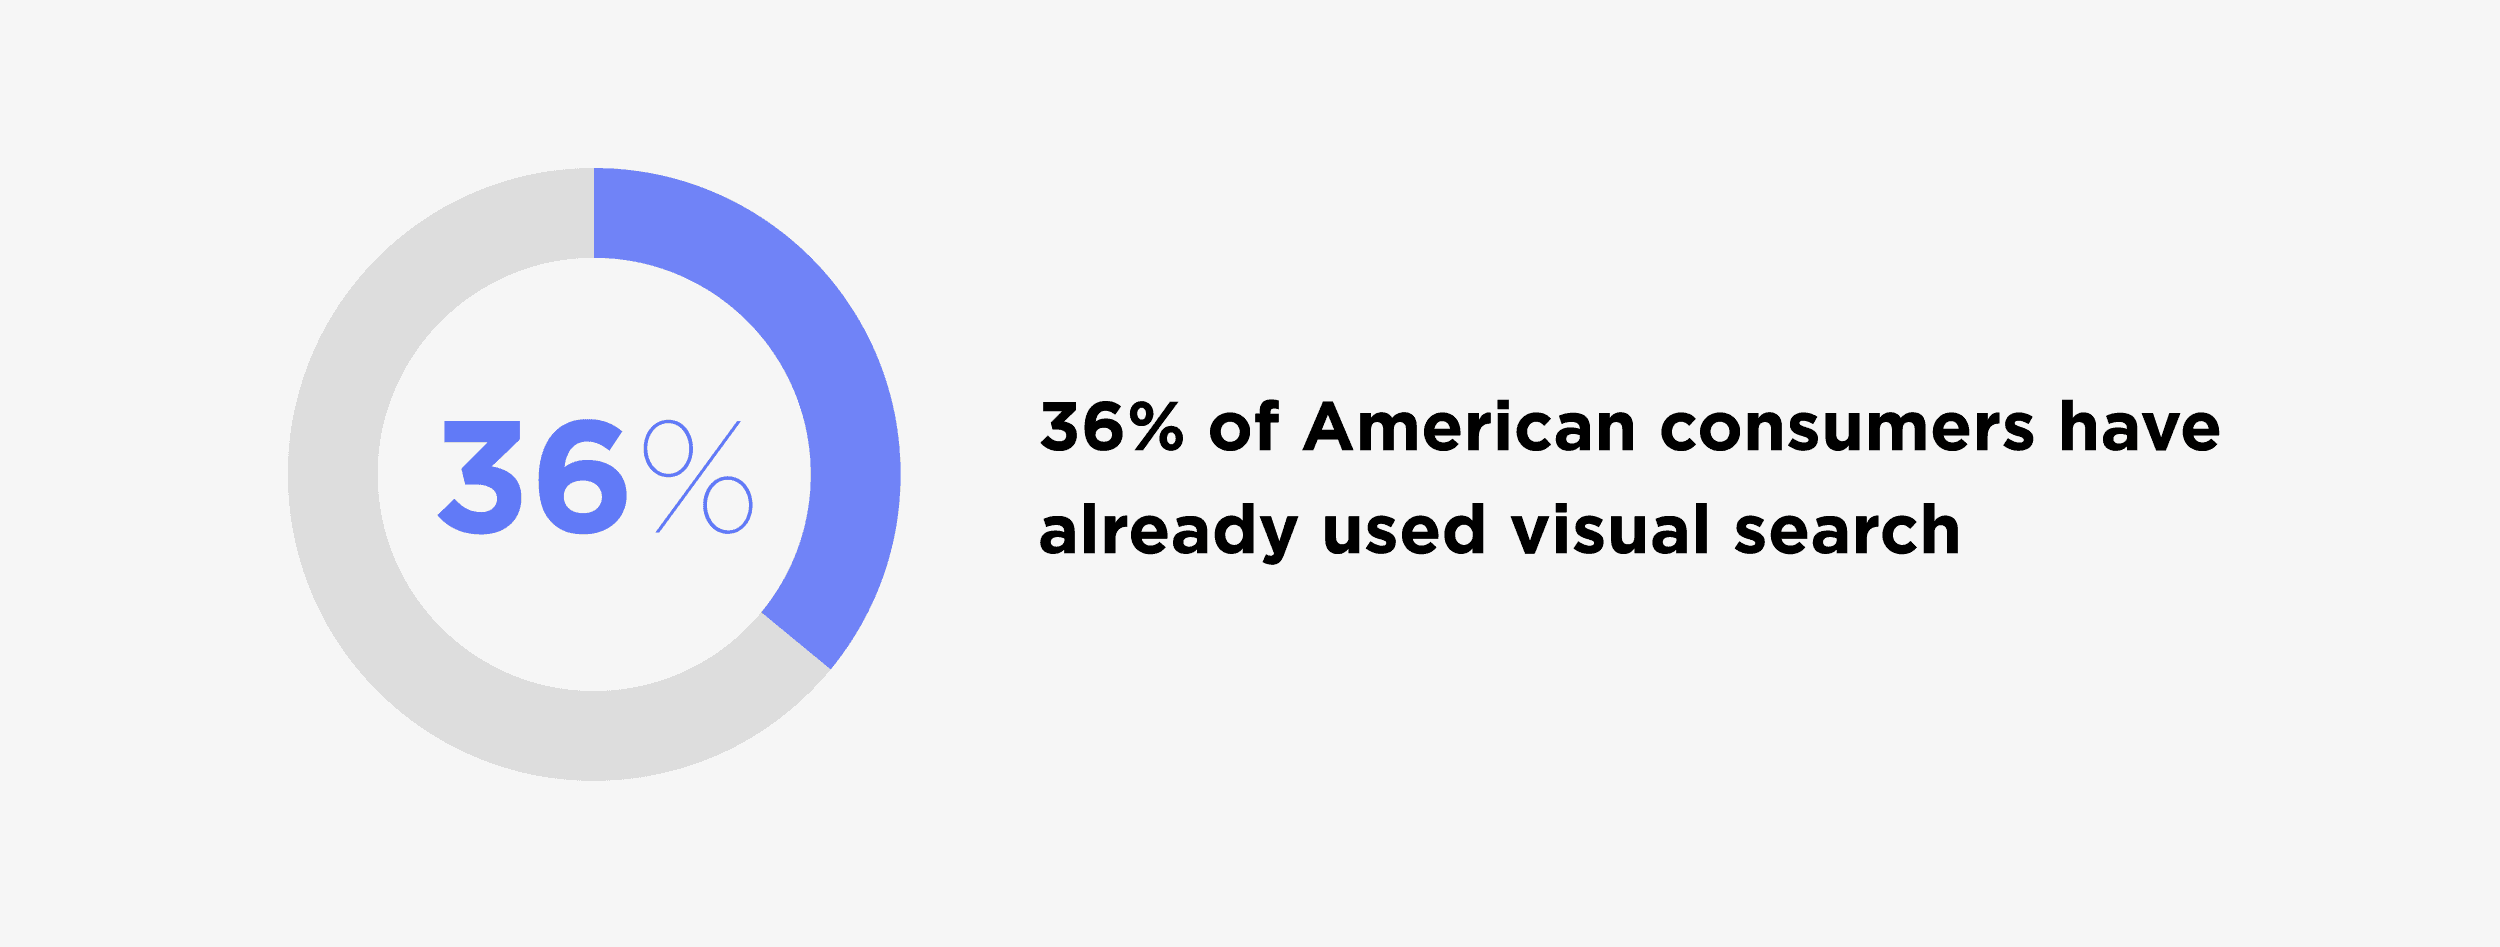 36% of American consumers have already used visual search